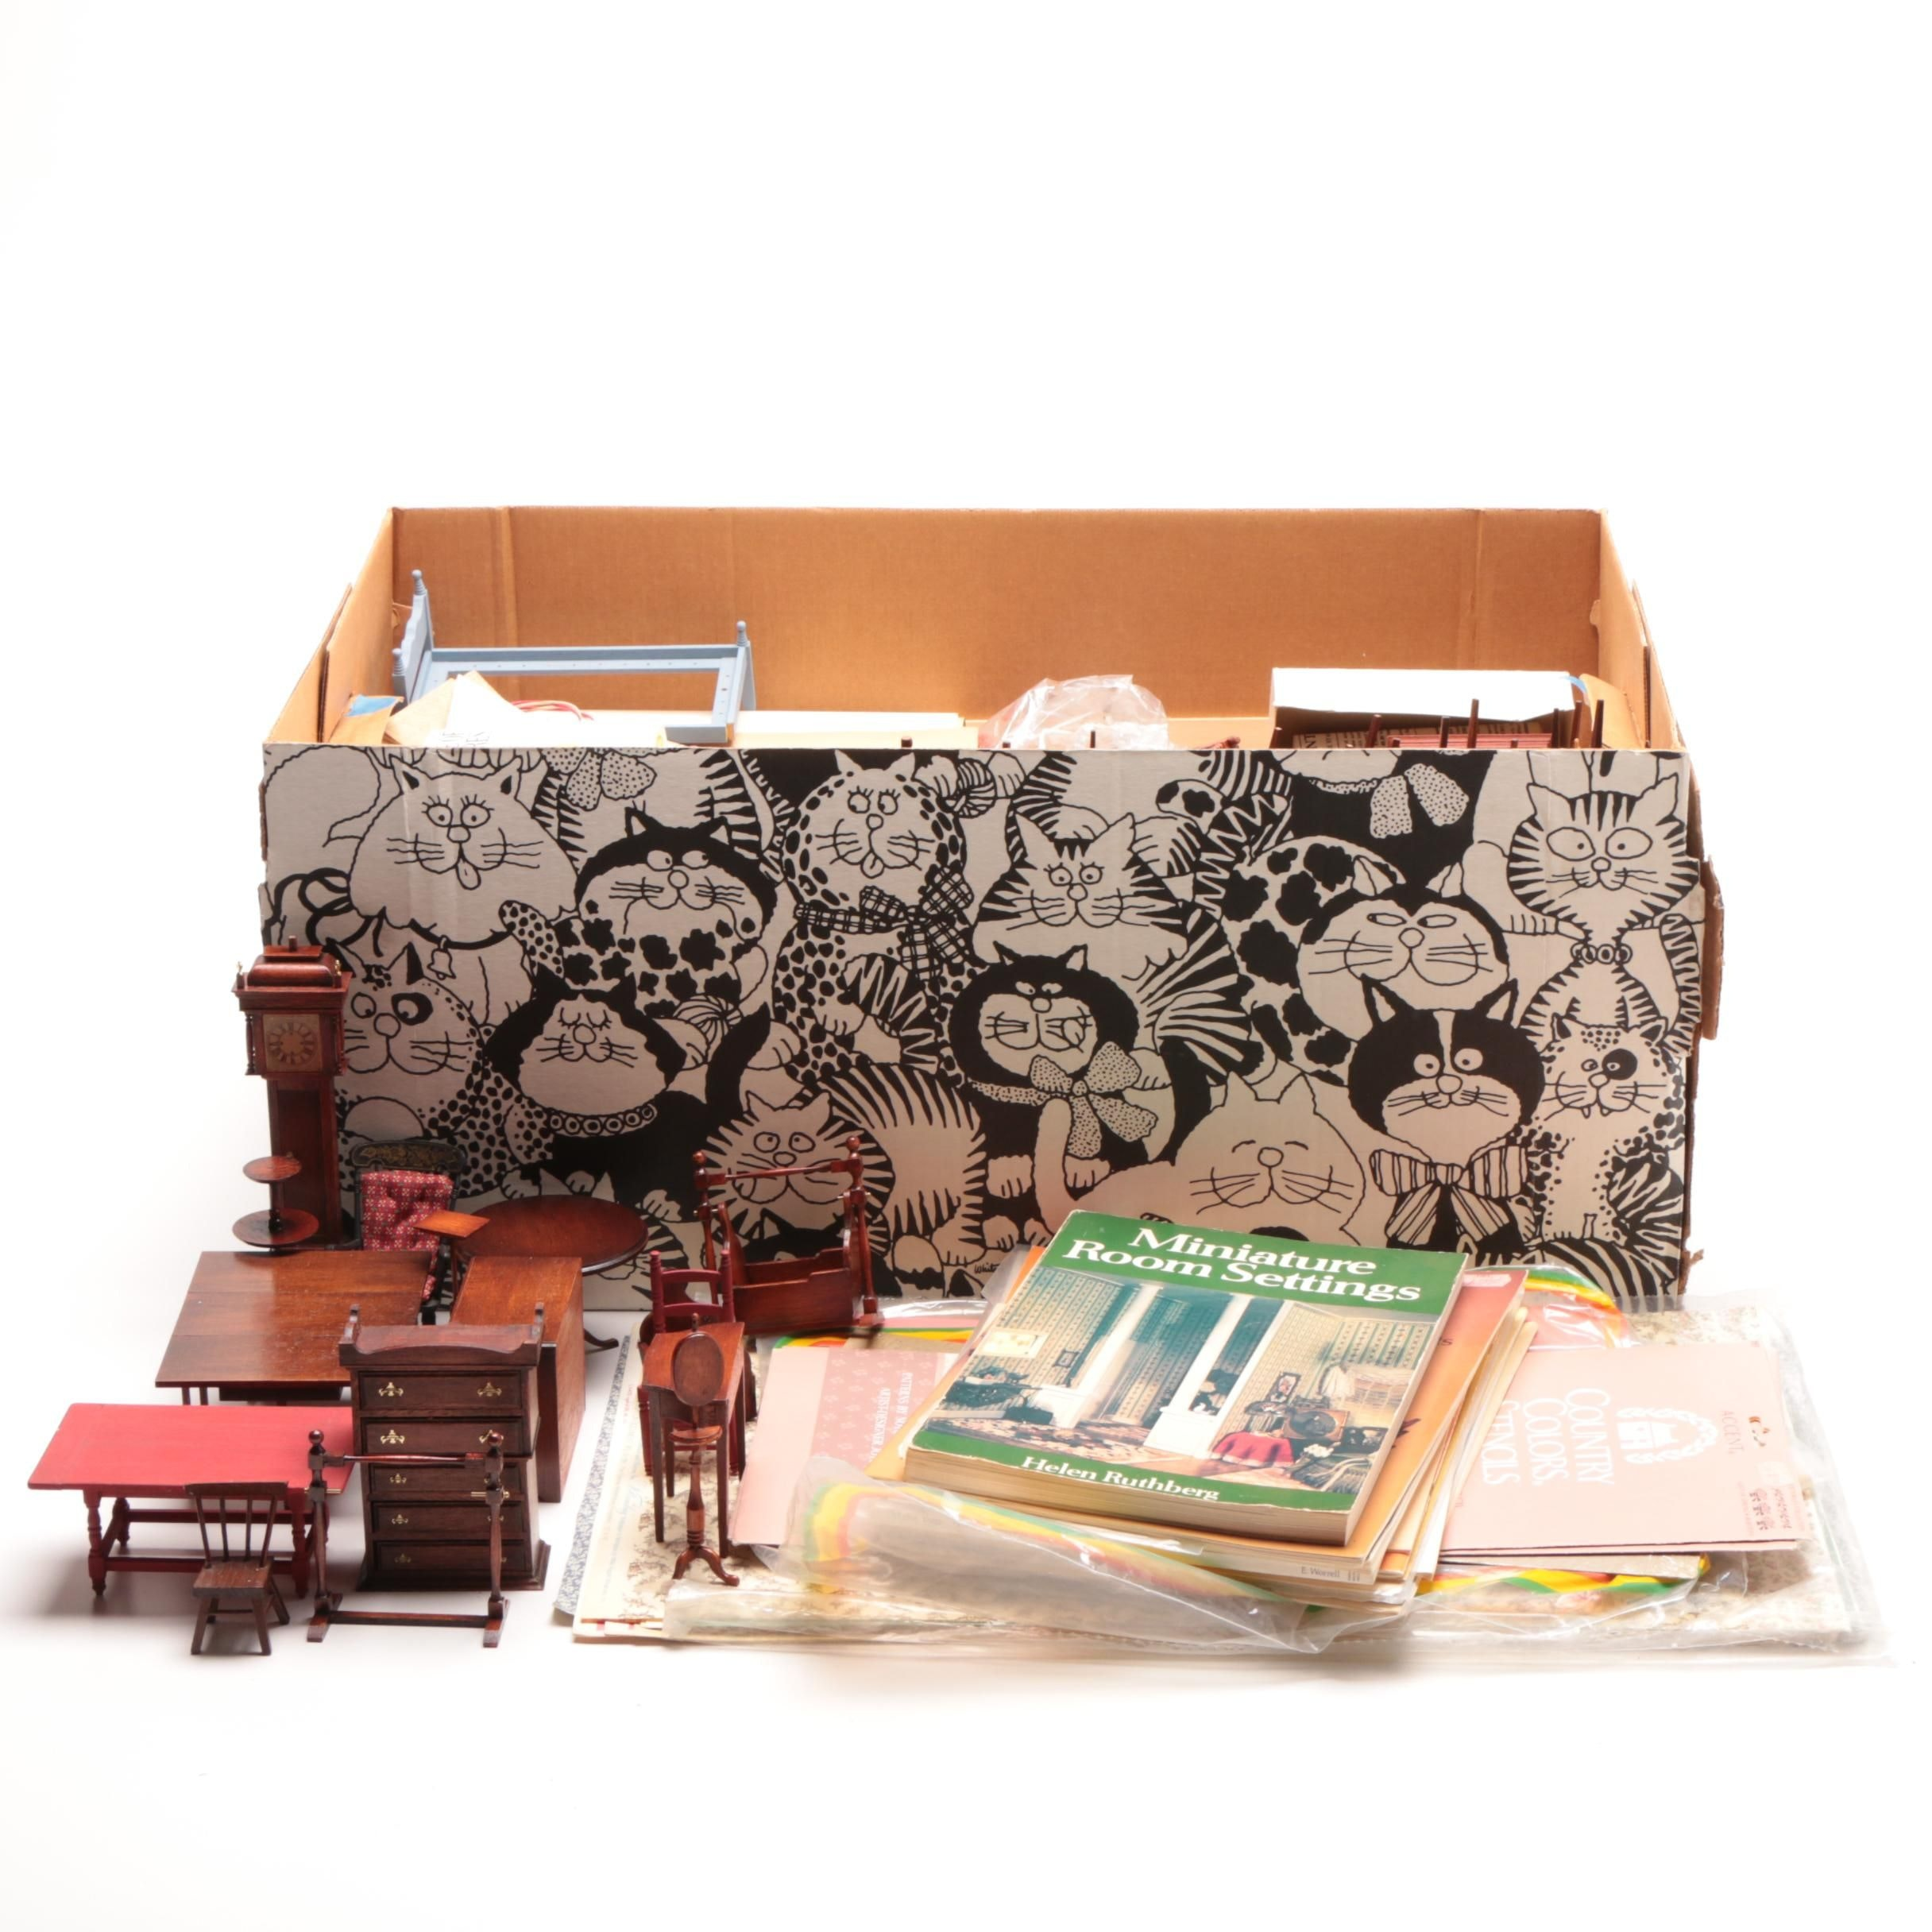 Large Grouping of Dollhouse Furnishings-Books-Accessories